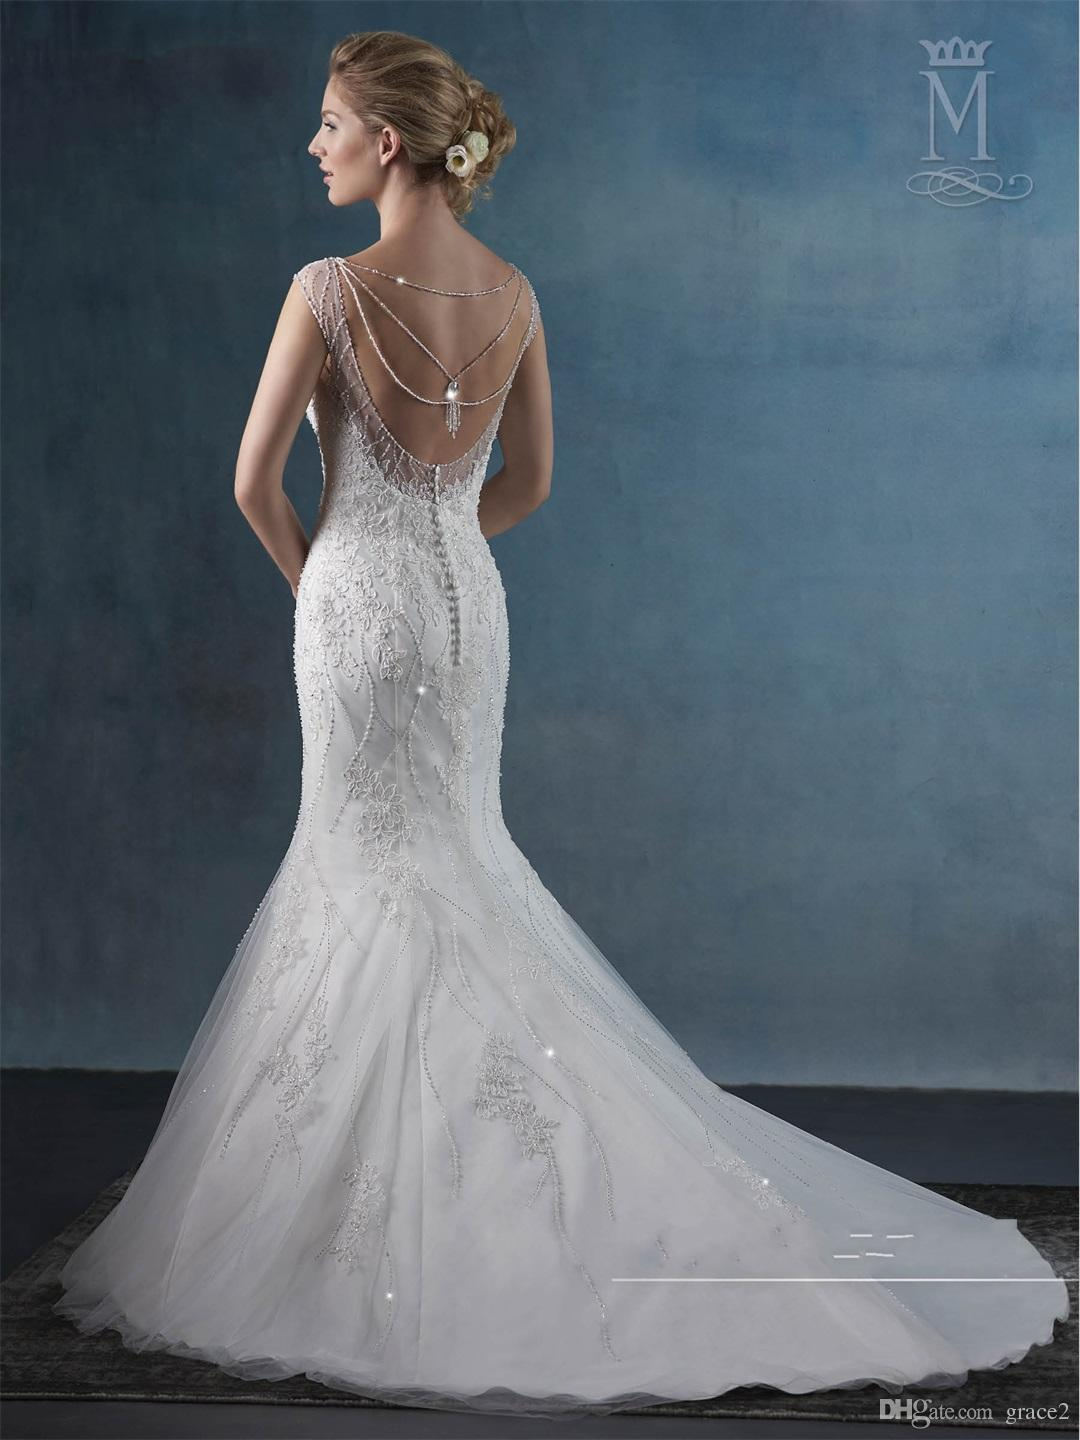 Discount unique wedding dresses fitted 2017 unique wedding unique back wedding dresses 2017 marys bridal with sheer neck and chapel train beading chain fit and flare vestido de noiva discount unique wedding dresses ombrellifo Image collections